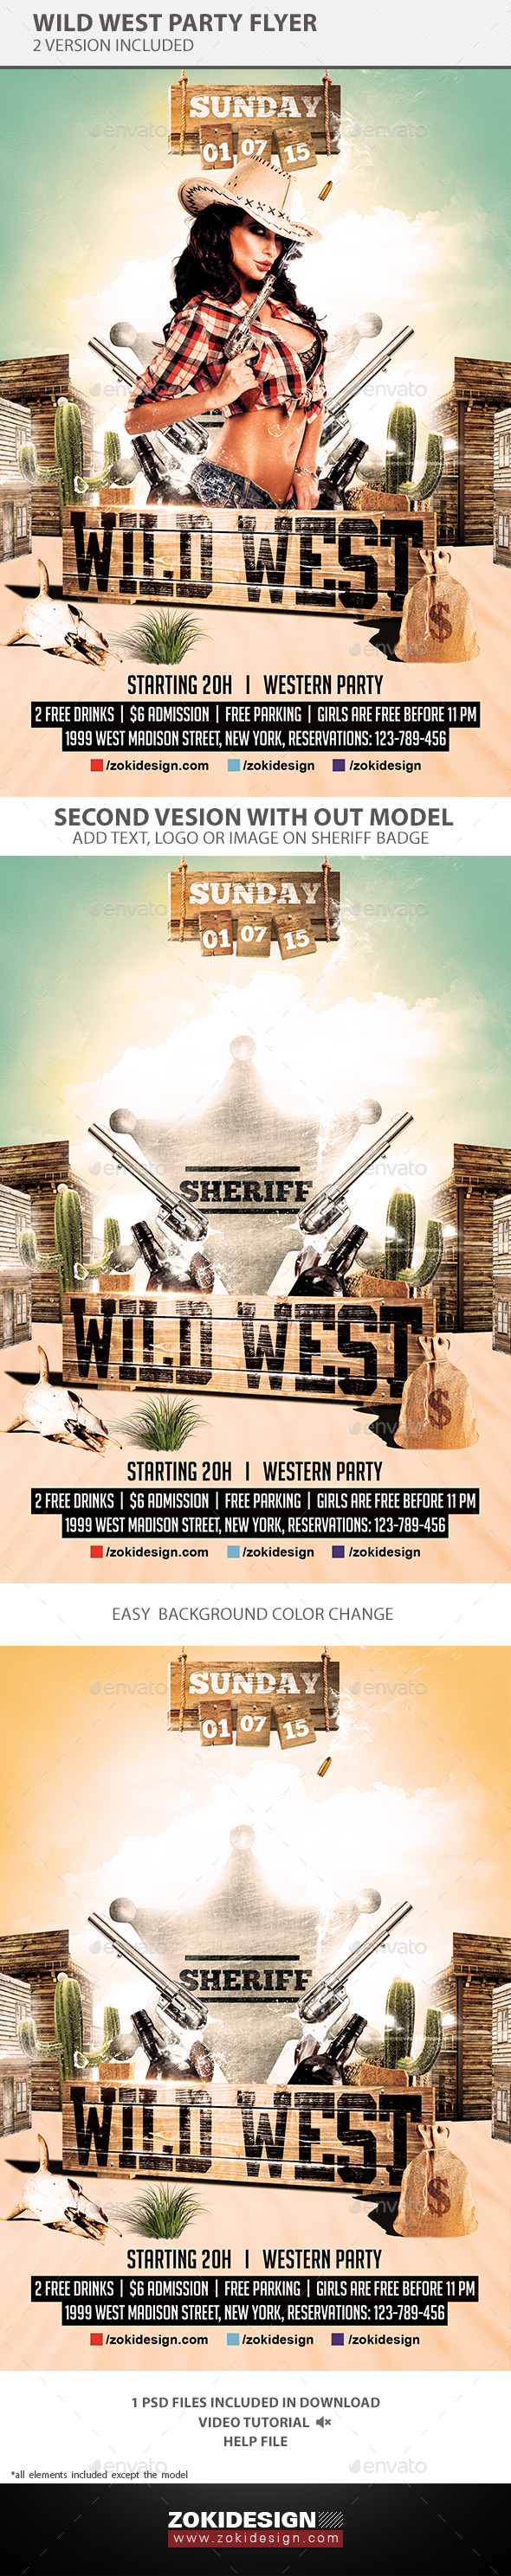 GraphicRiver Wild West Party Flyer 10390380